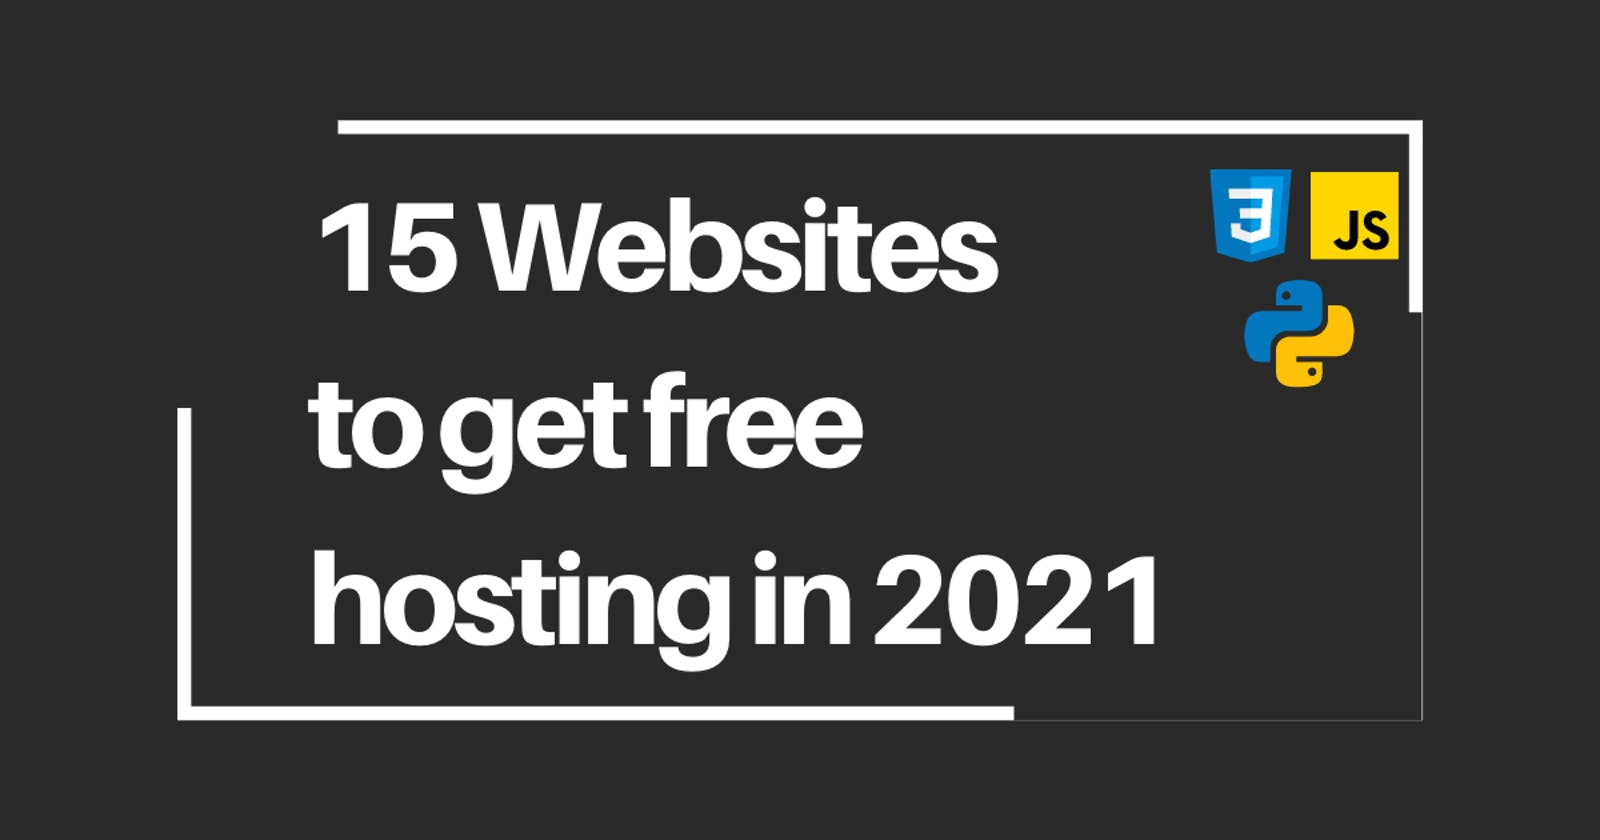 15 Websites to host your projects for free in 2021